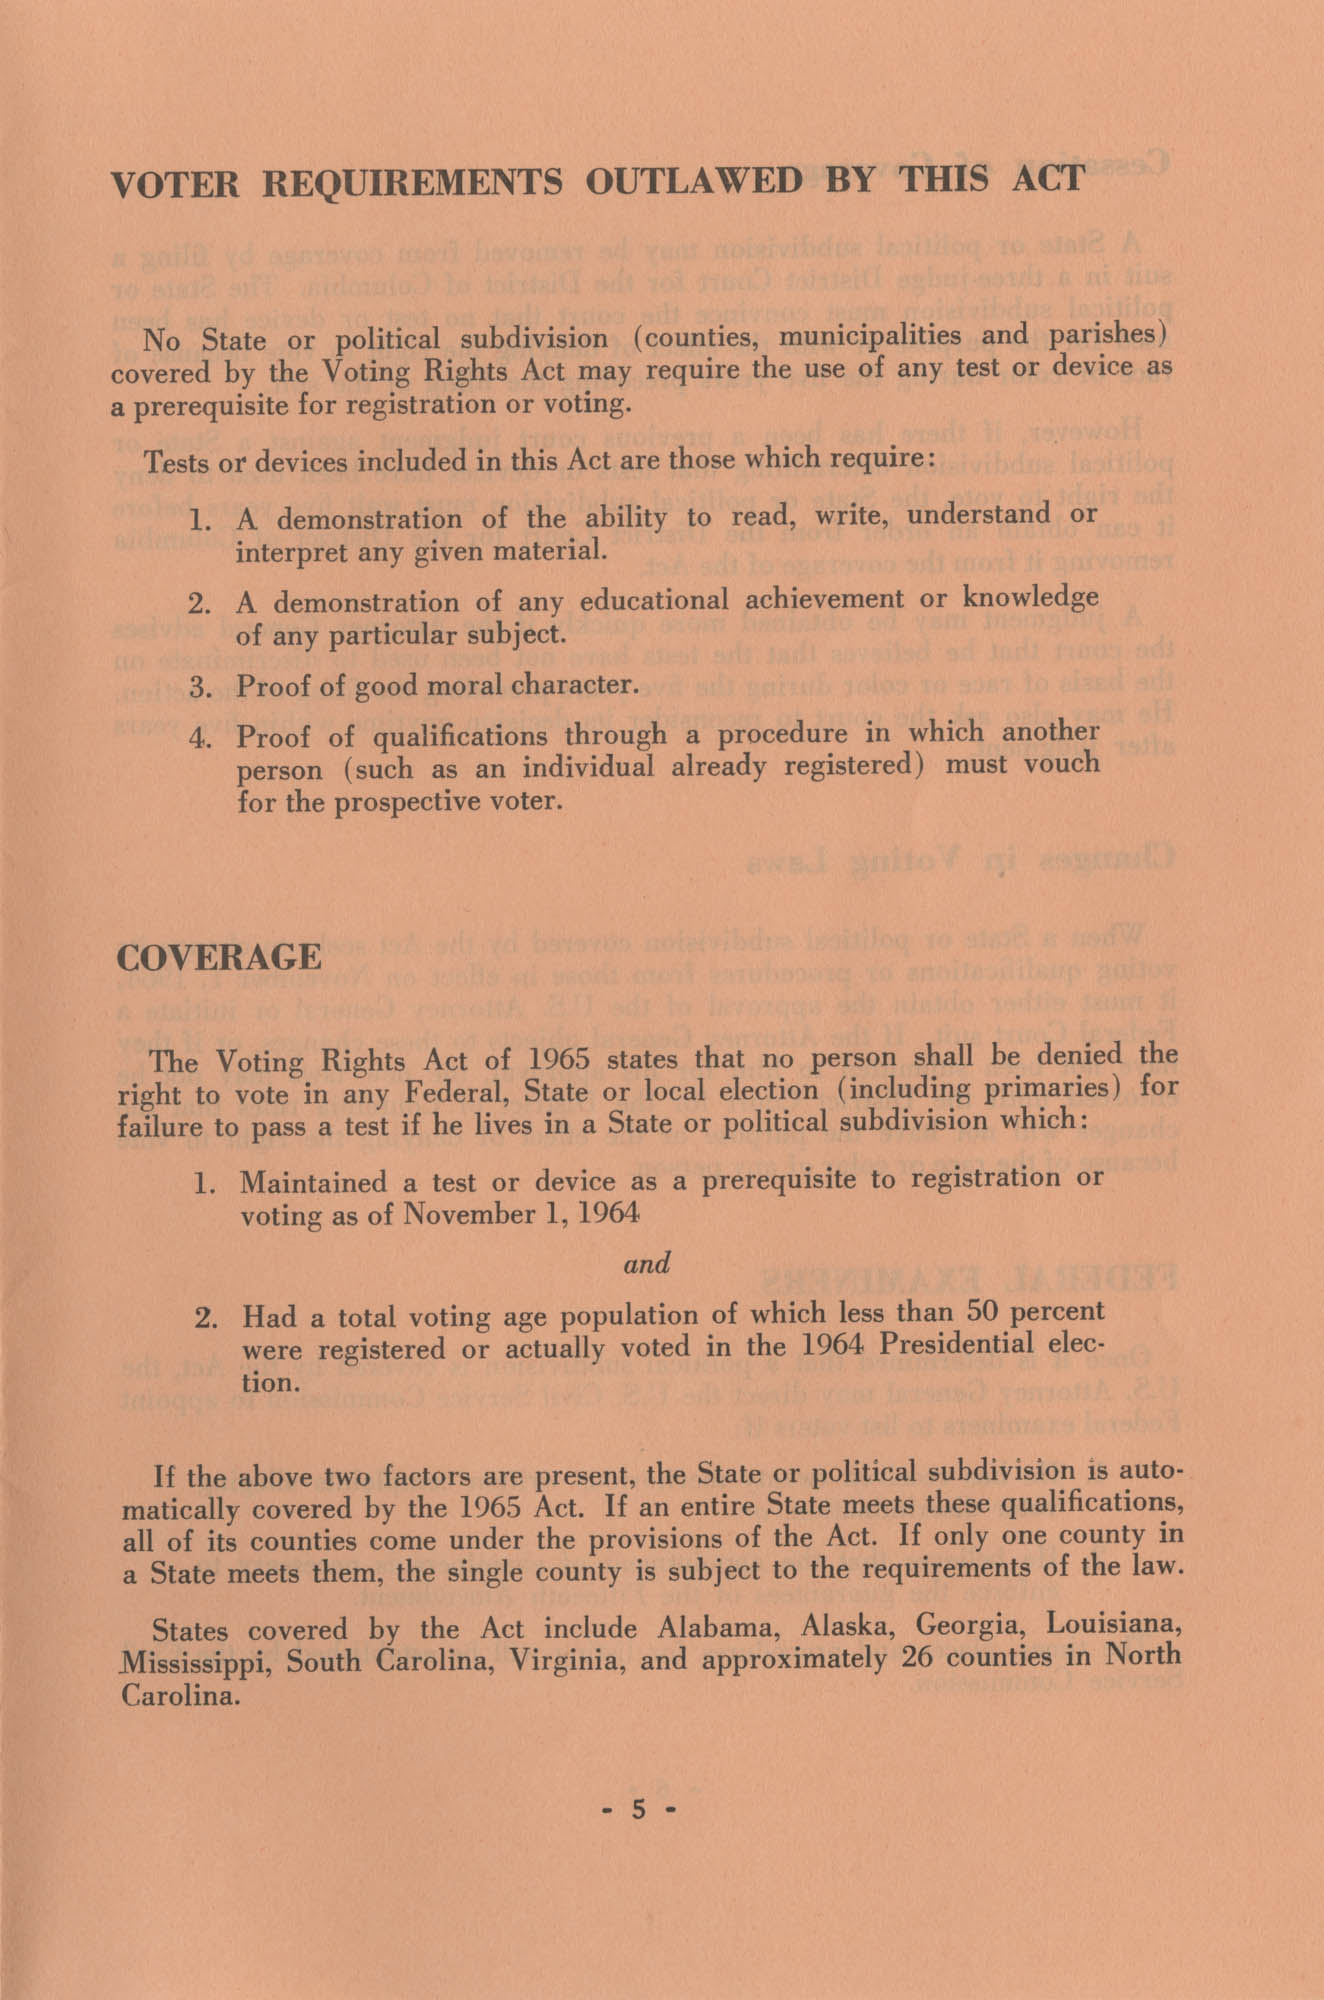 The Voting Rights Act of 1965, Page 5